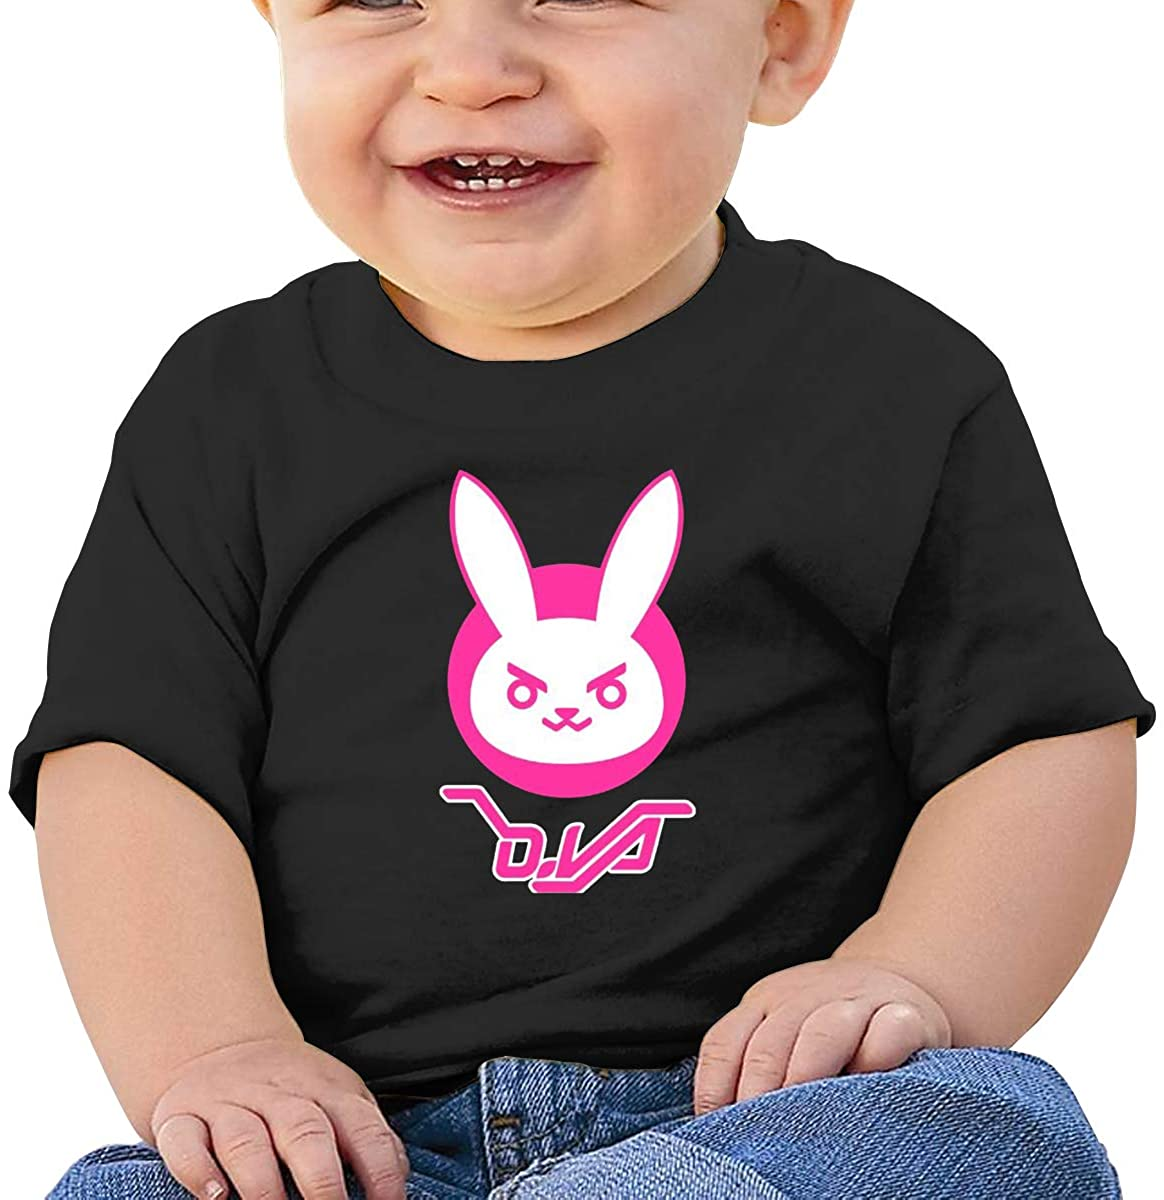 6-24 Months Boy and Girl Baby Short Sleeve T-Shirt Overwatch Dva Bunny Logo Original Minimalist Style Black